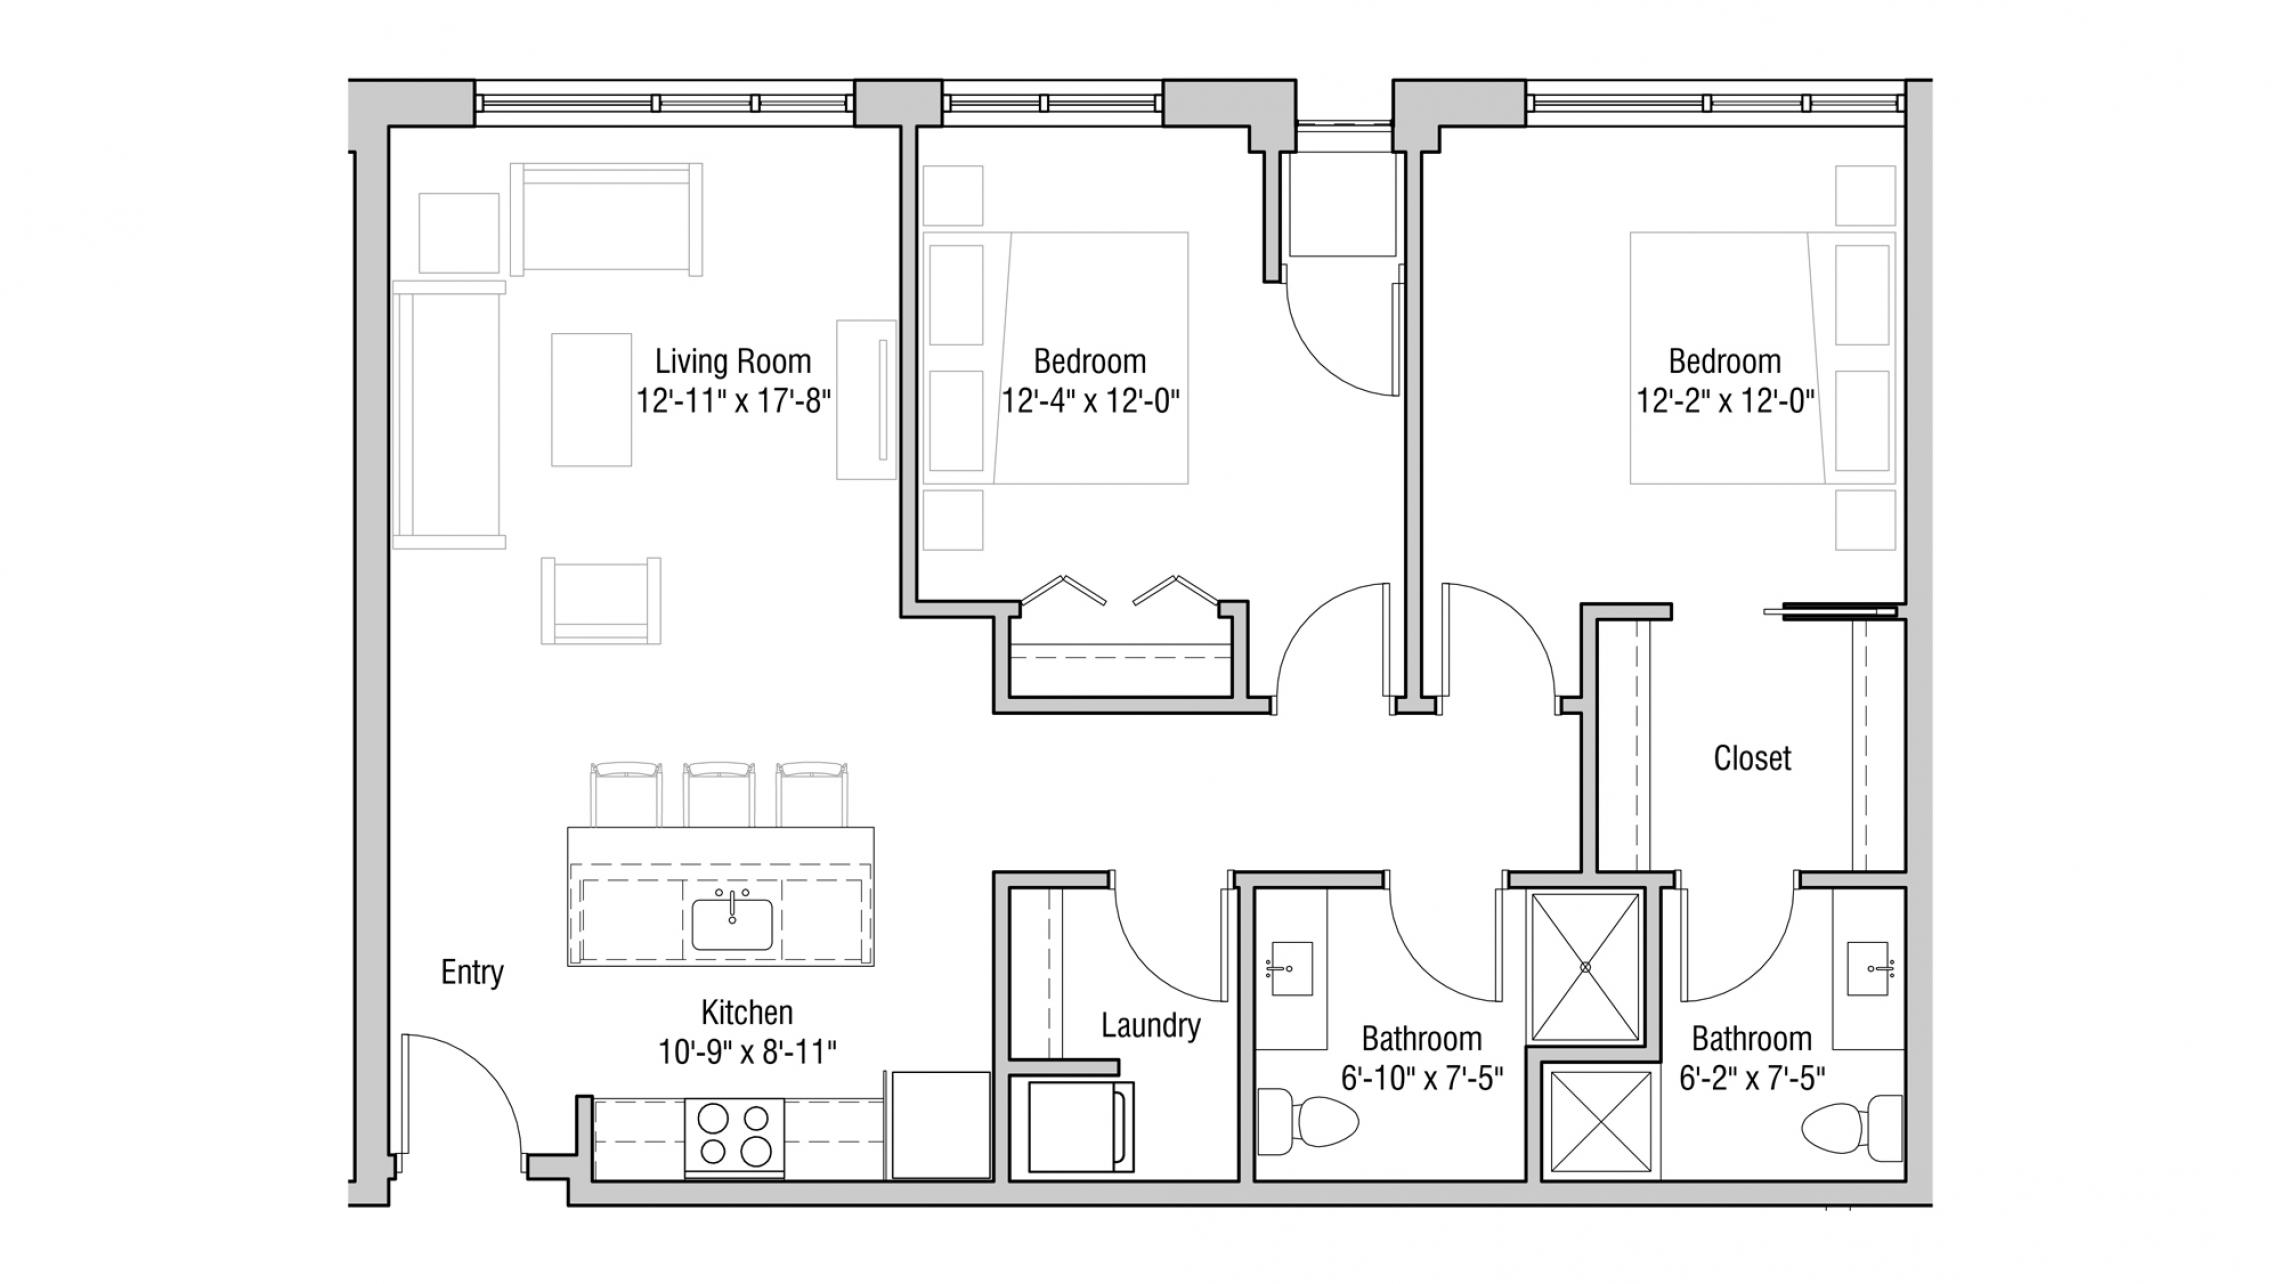 ULI Quarter Row 317 - Two Bedroom, Two Bathroom